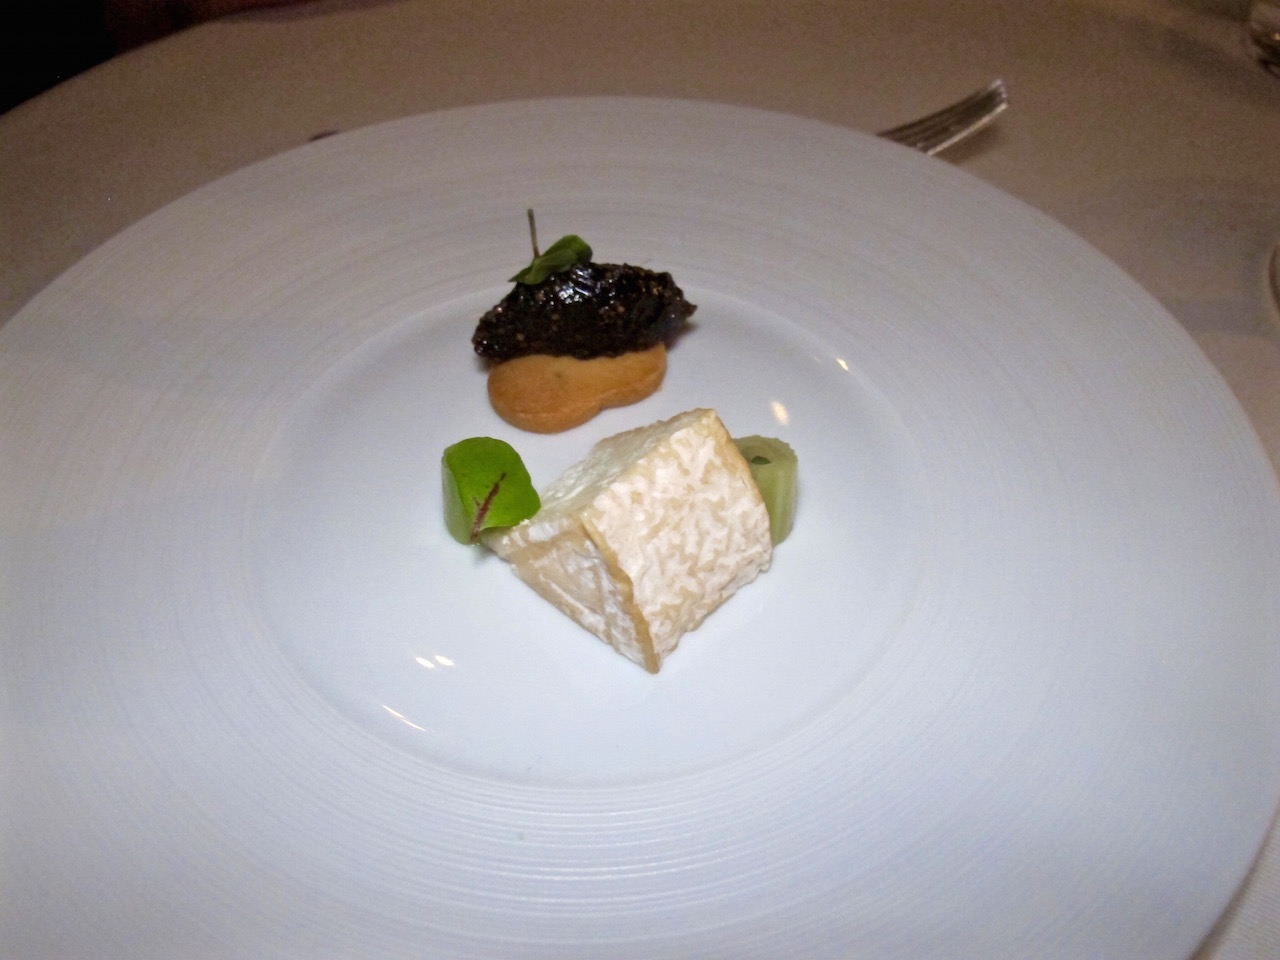 French Laundry cheese